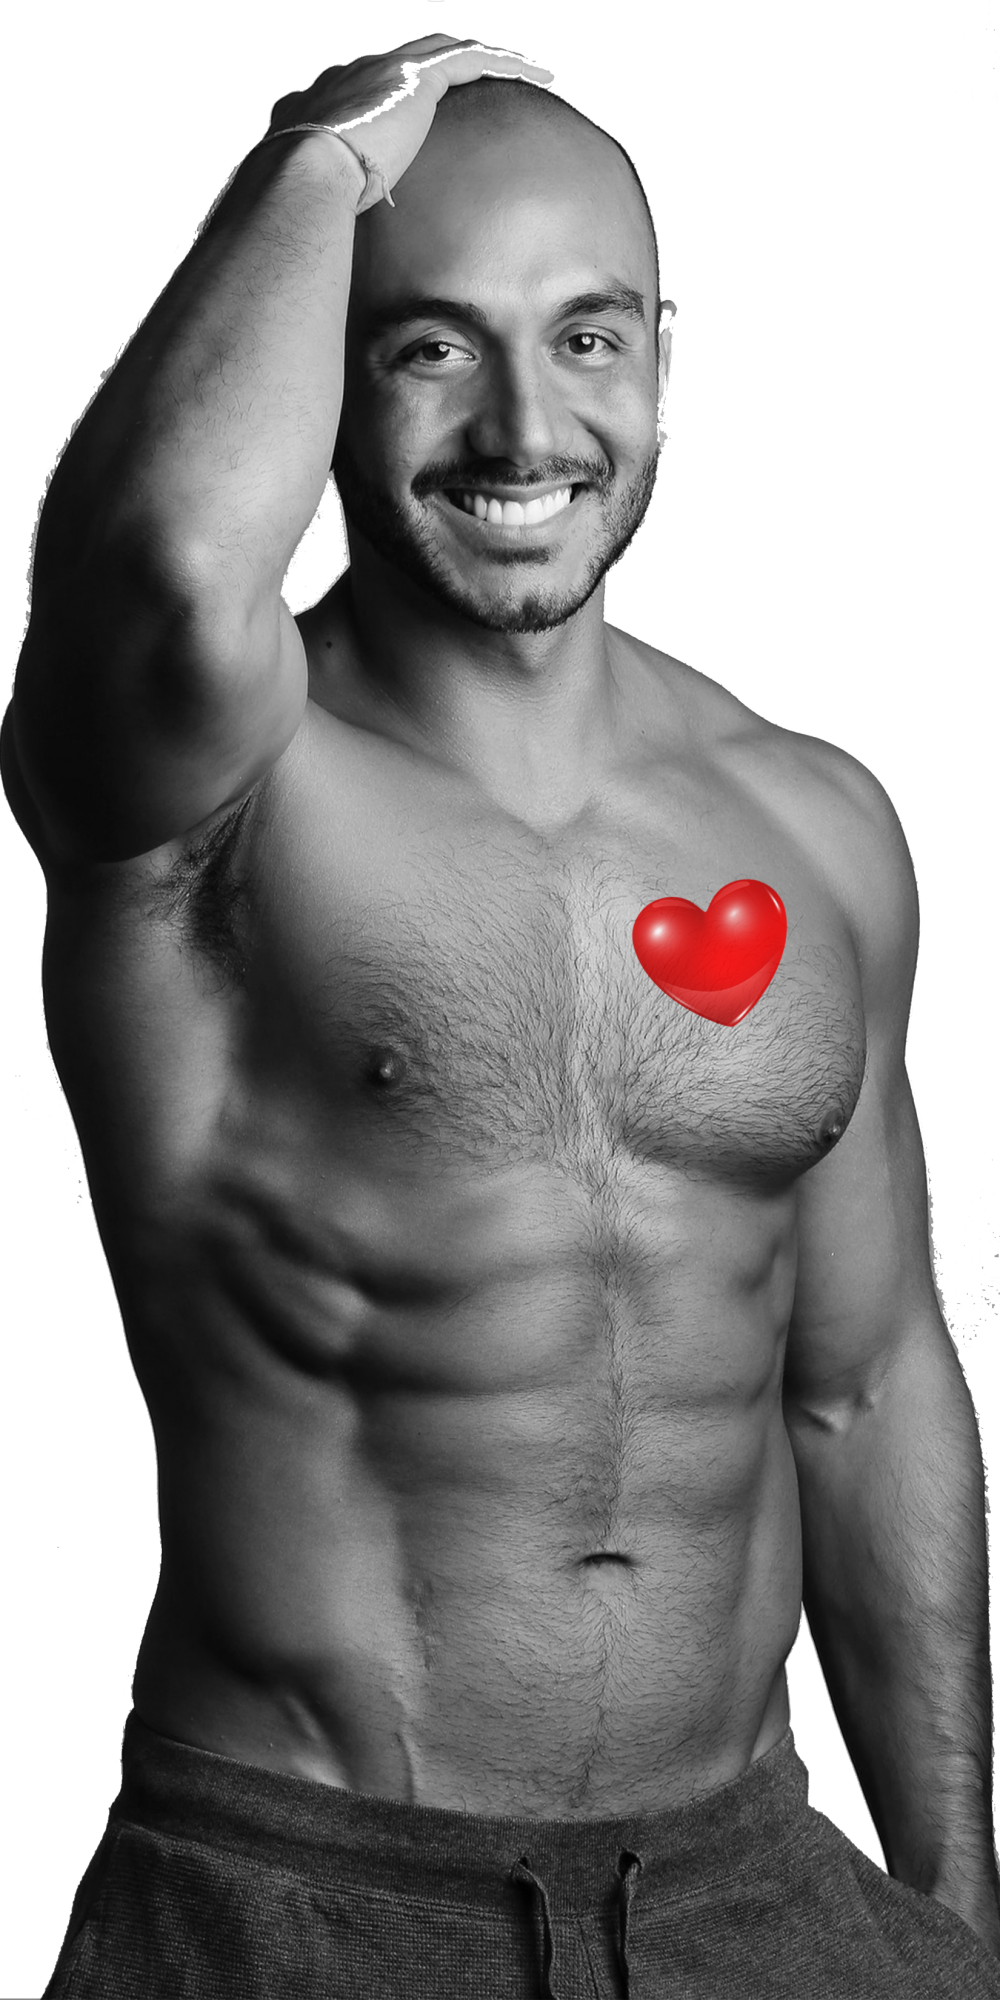 Male model_2 with heart overlay3